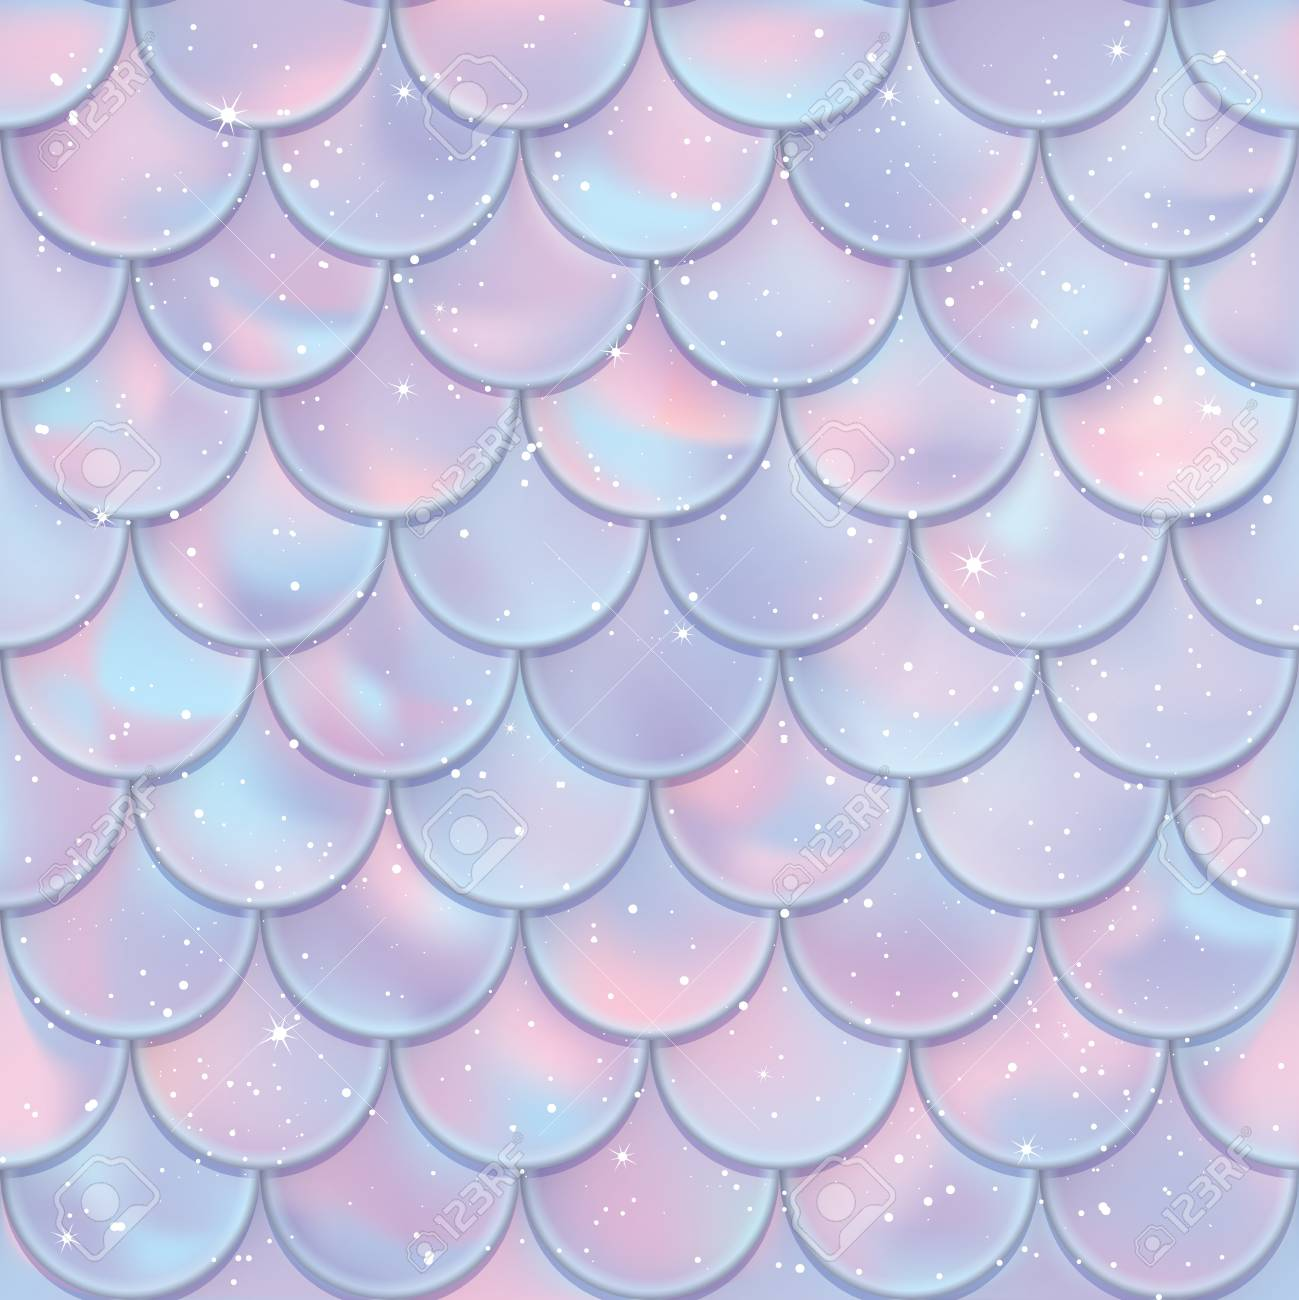 Fish Scales Seamless Pattern Mermaid Tail Texture Vector Illustration Print Design For Textile